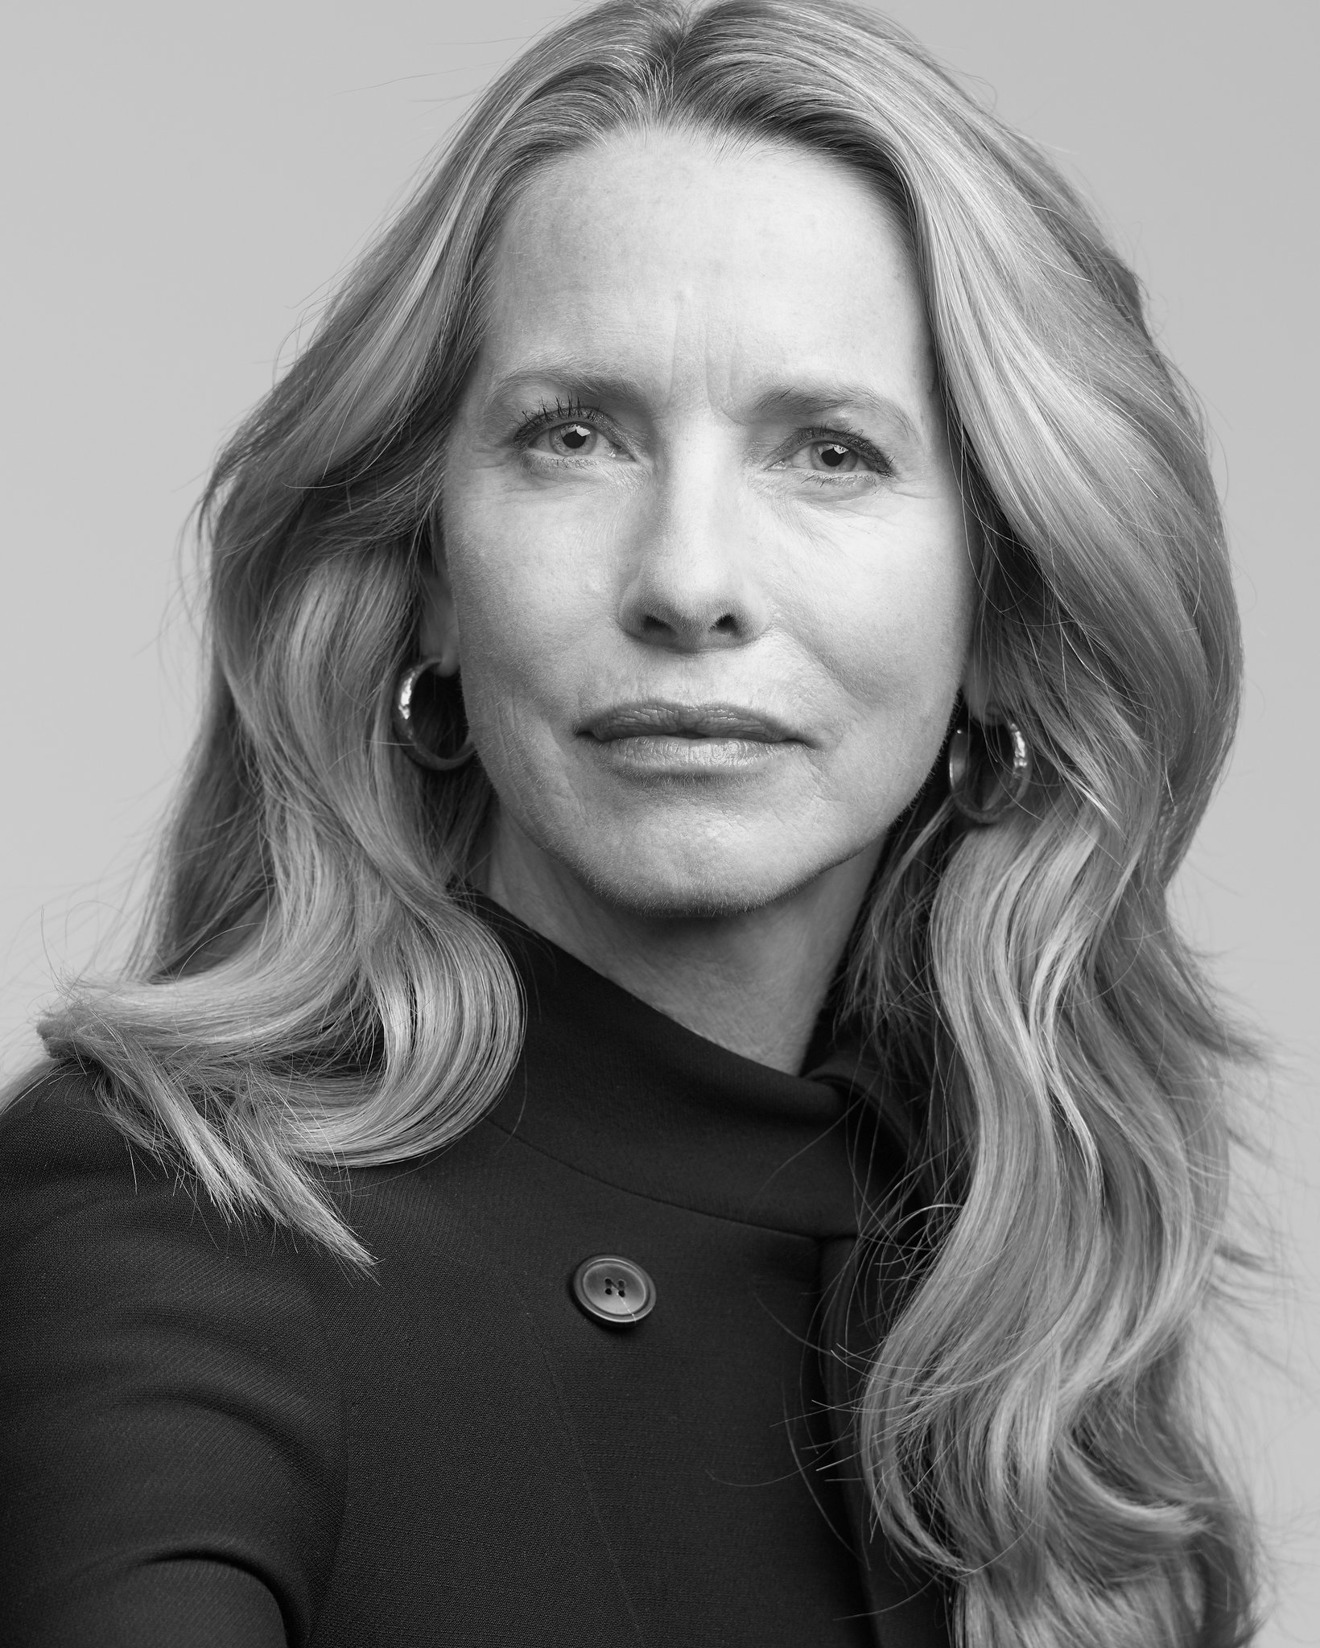 Laurene Powell Jobs, widow to Steve Jobs (photo credit: New York Times)